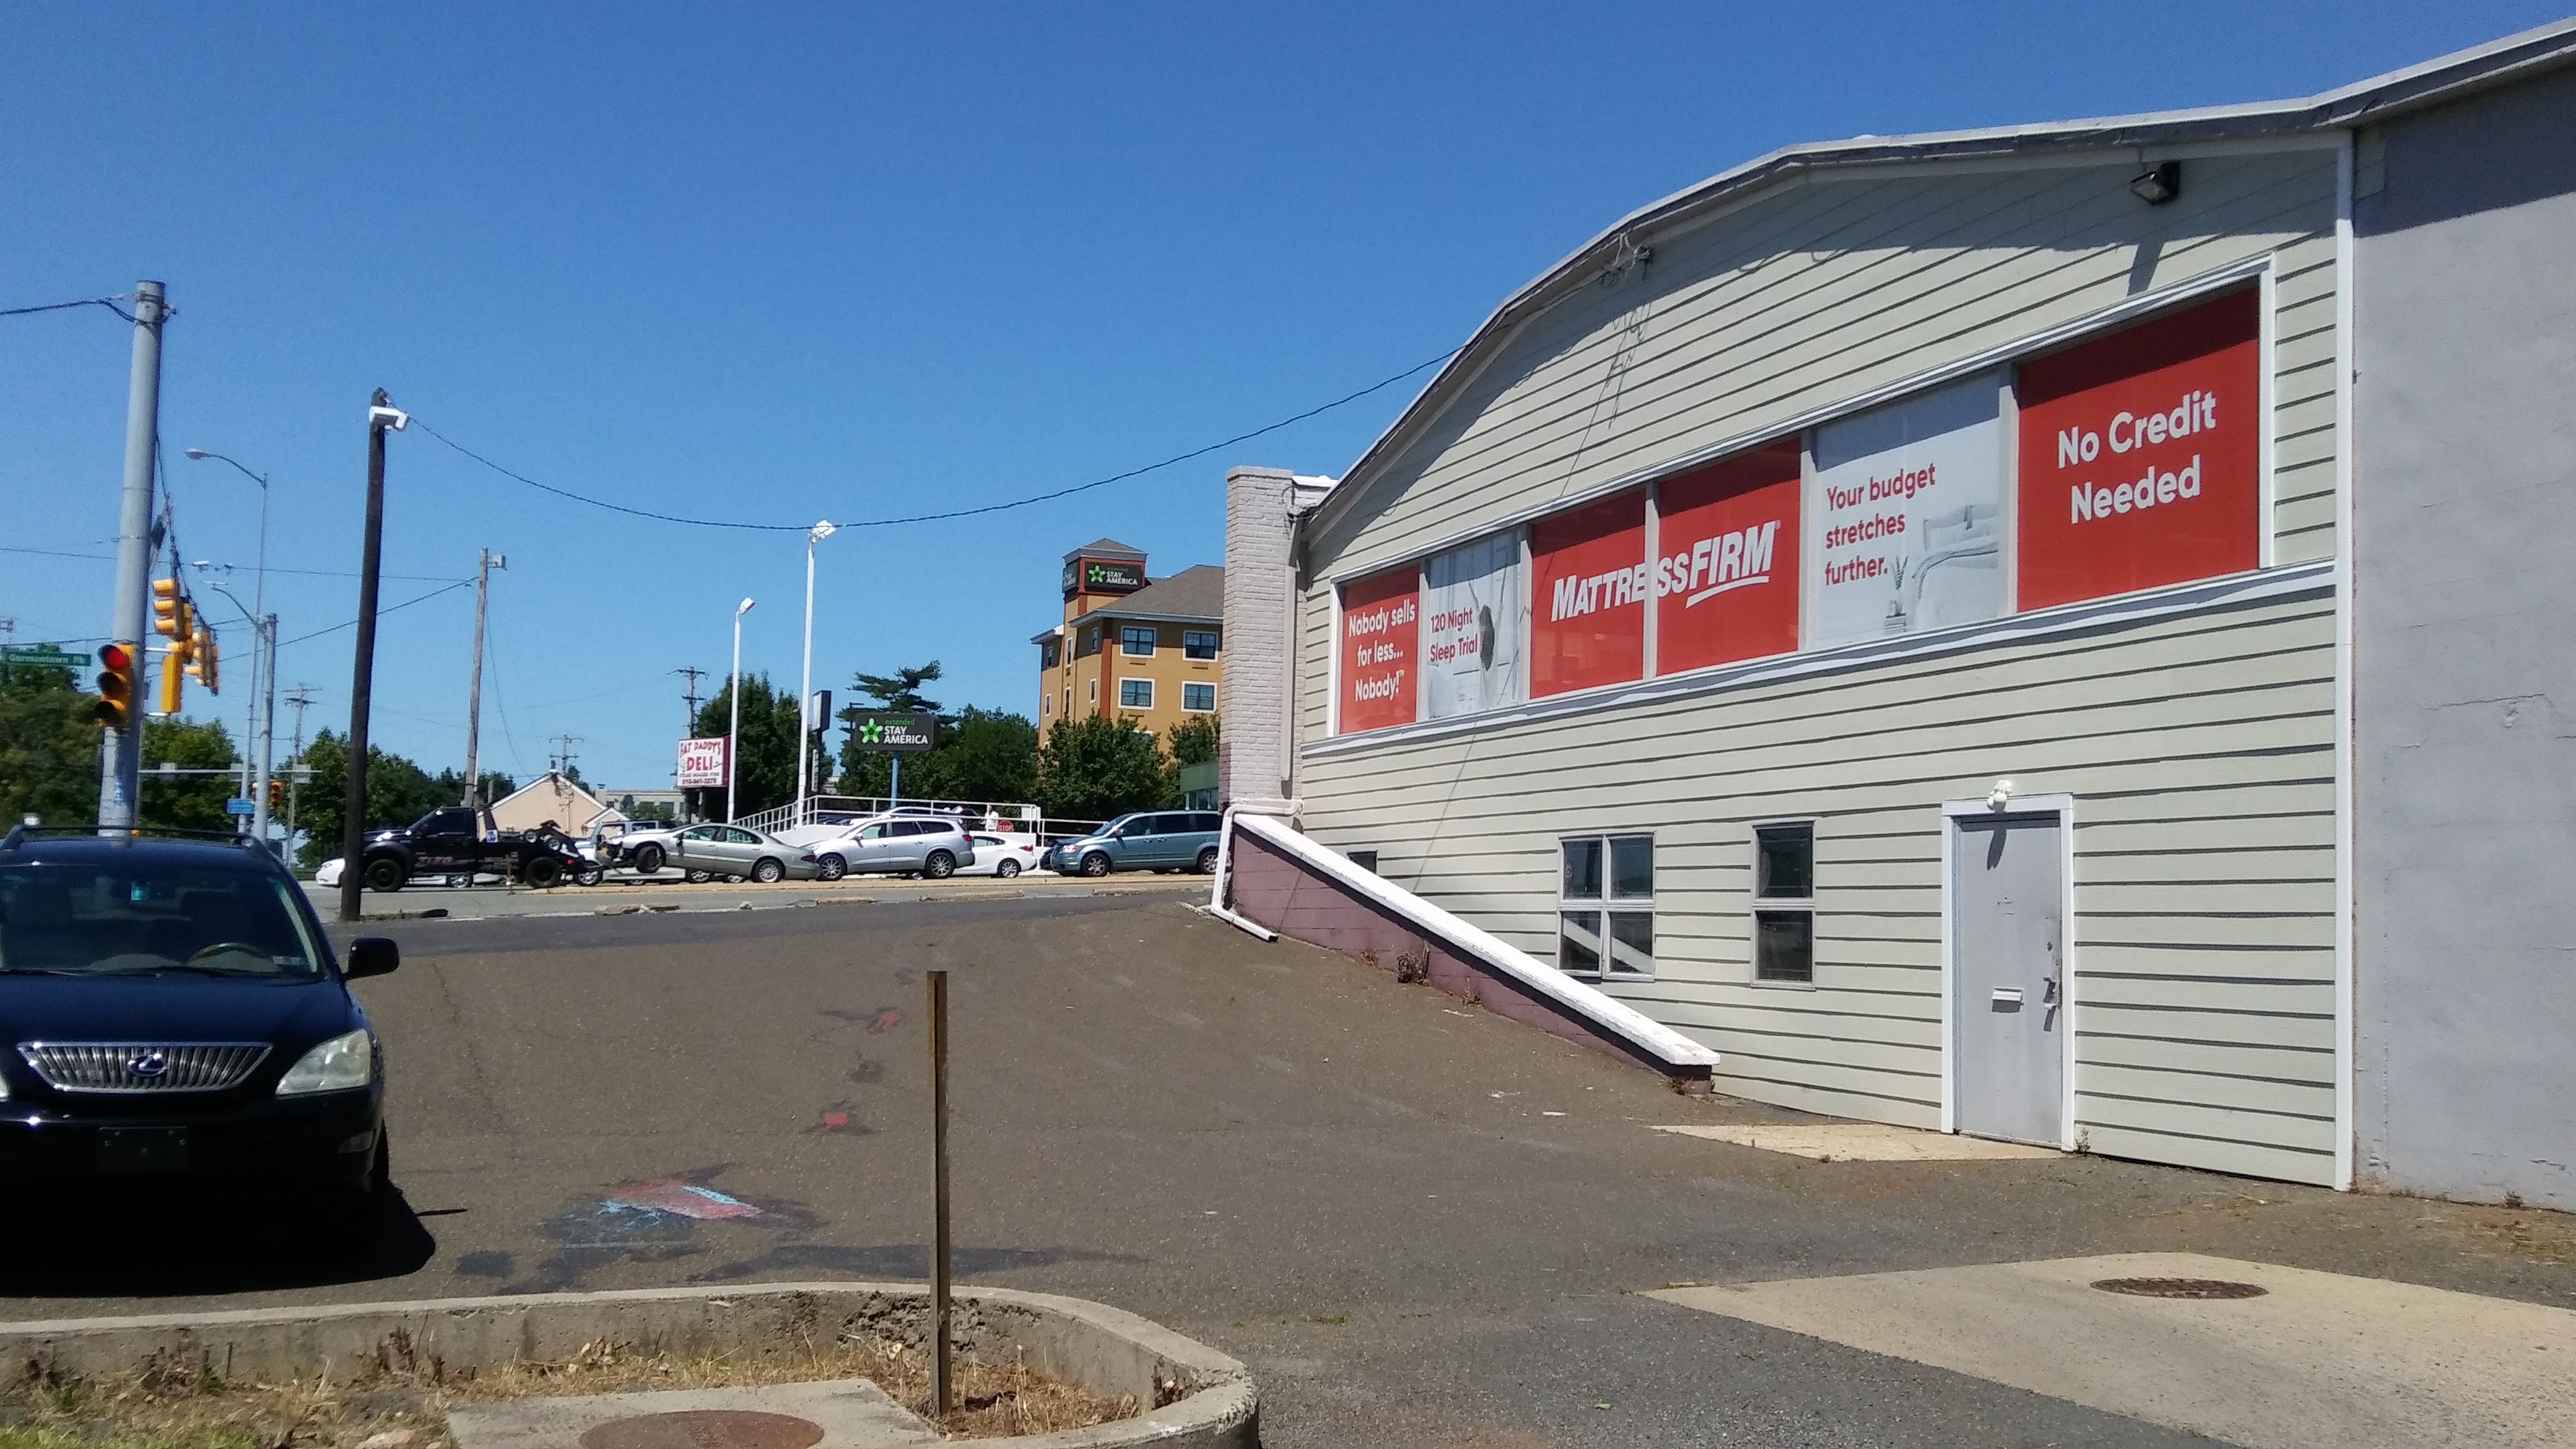 Mattress Firm Plymouth Meeting image 1